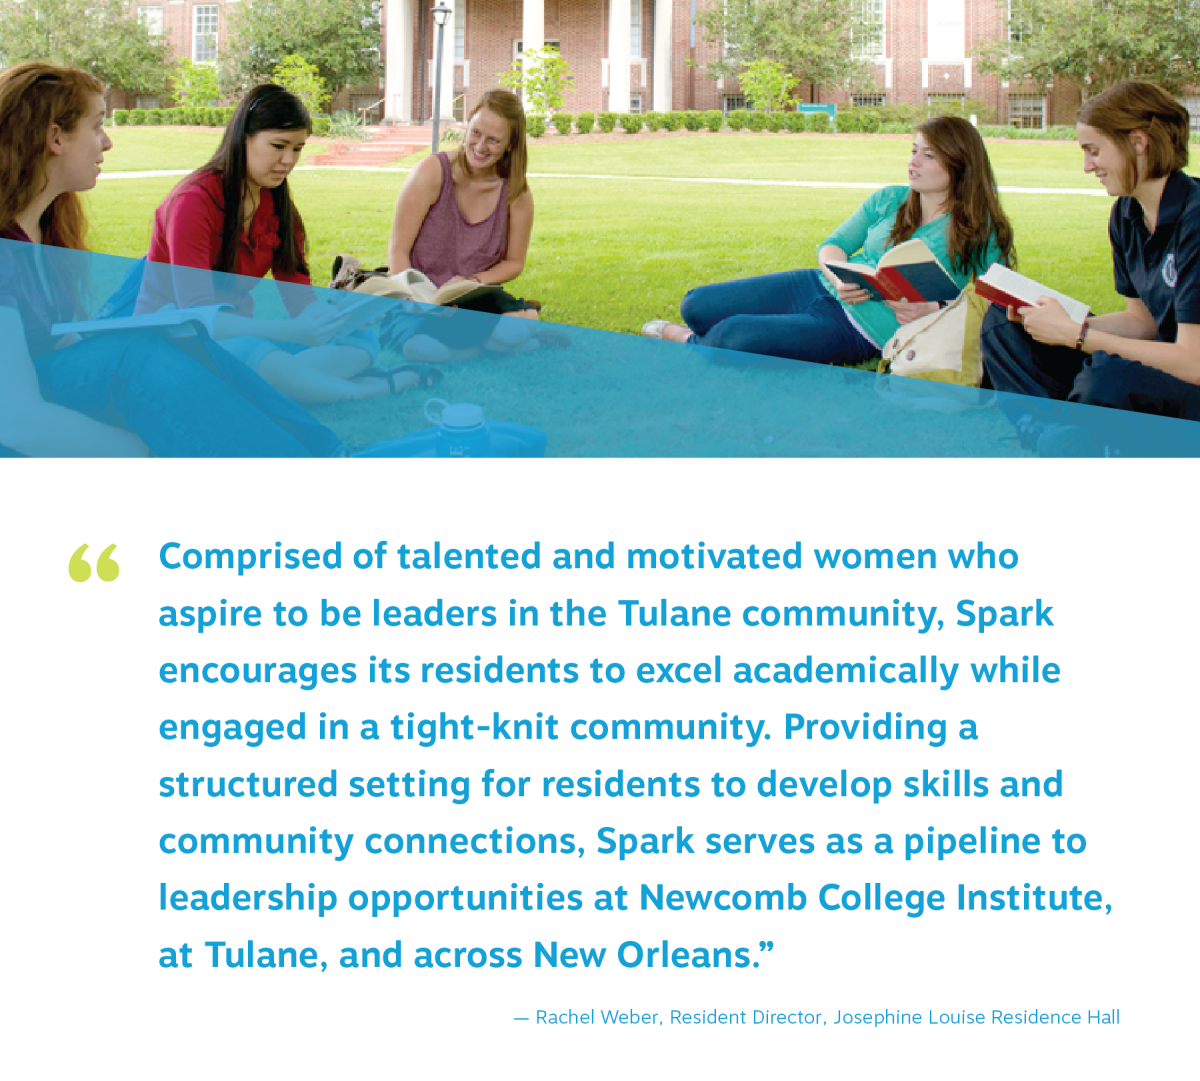 "spark students study together on the josephine louise quad. quote reads ""Comprised of talented and motivated women who  aspire to be leaders in the Tulane community, Spark  encourages its residents to excel academically while  engaged in a tight-knit community. Providing a  structured setting for residents to develop skills and  community connections, Spark serves as a pipeline to  leadership opportunities at Newcomb College Institute,  at Tulane, and across New Orleans."" Rachel Weber, Josephine Louise Resident Director"